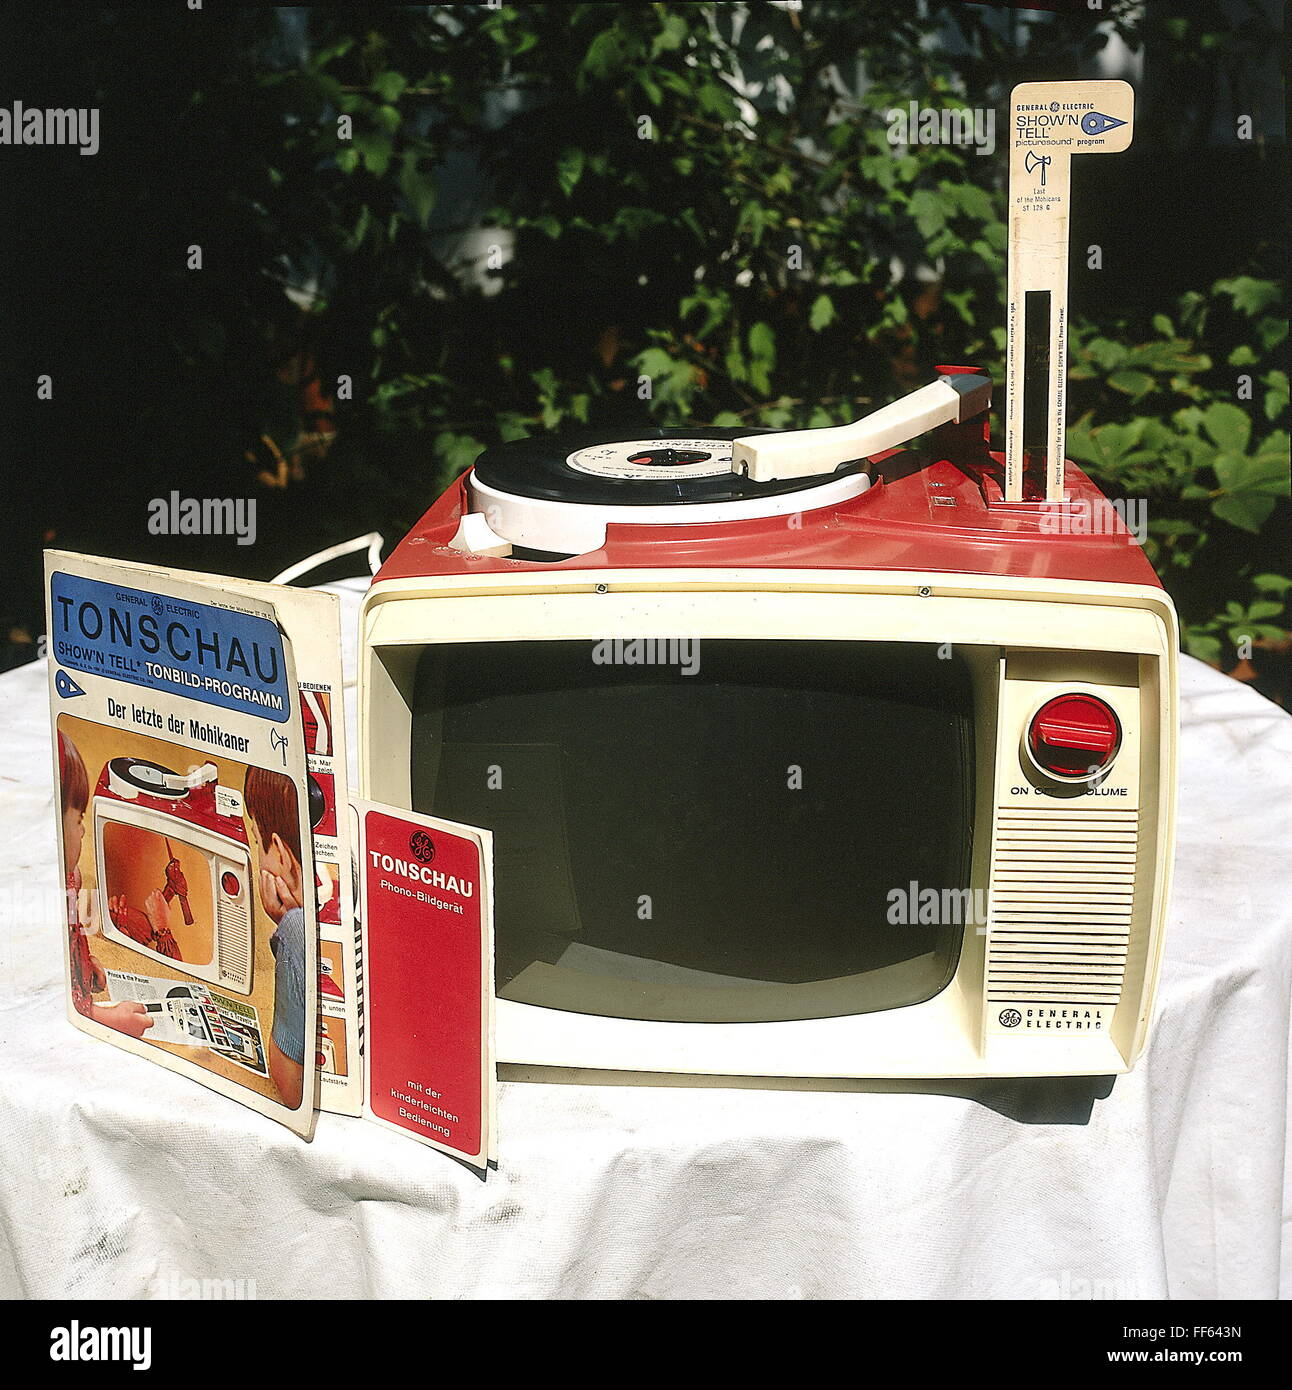 technics, 'Tonschau' device by General Electric, 1964, Additional-Rights-Clearences-NA - Stock Image